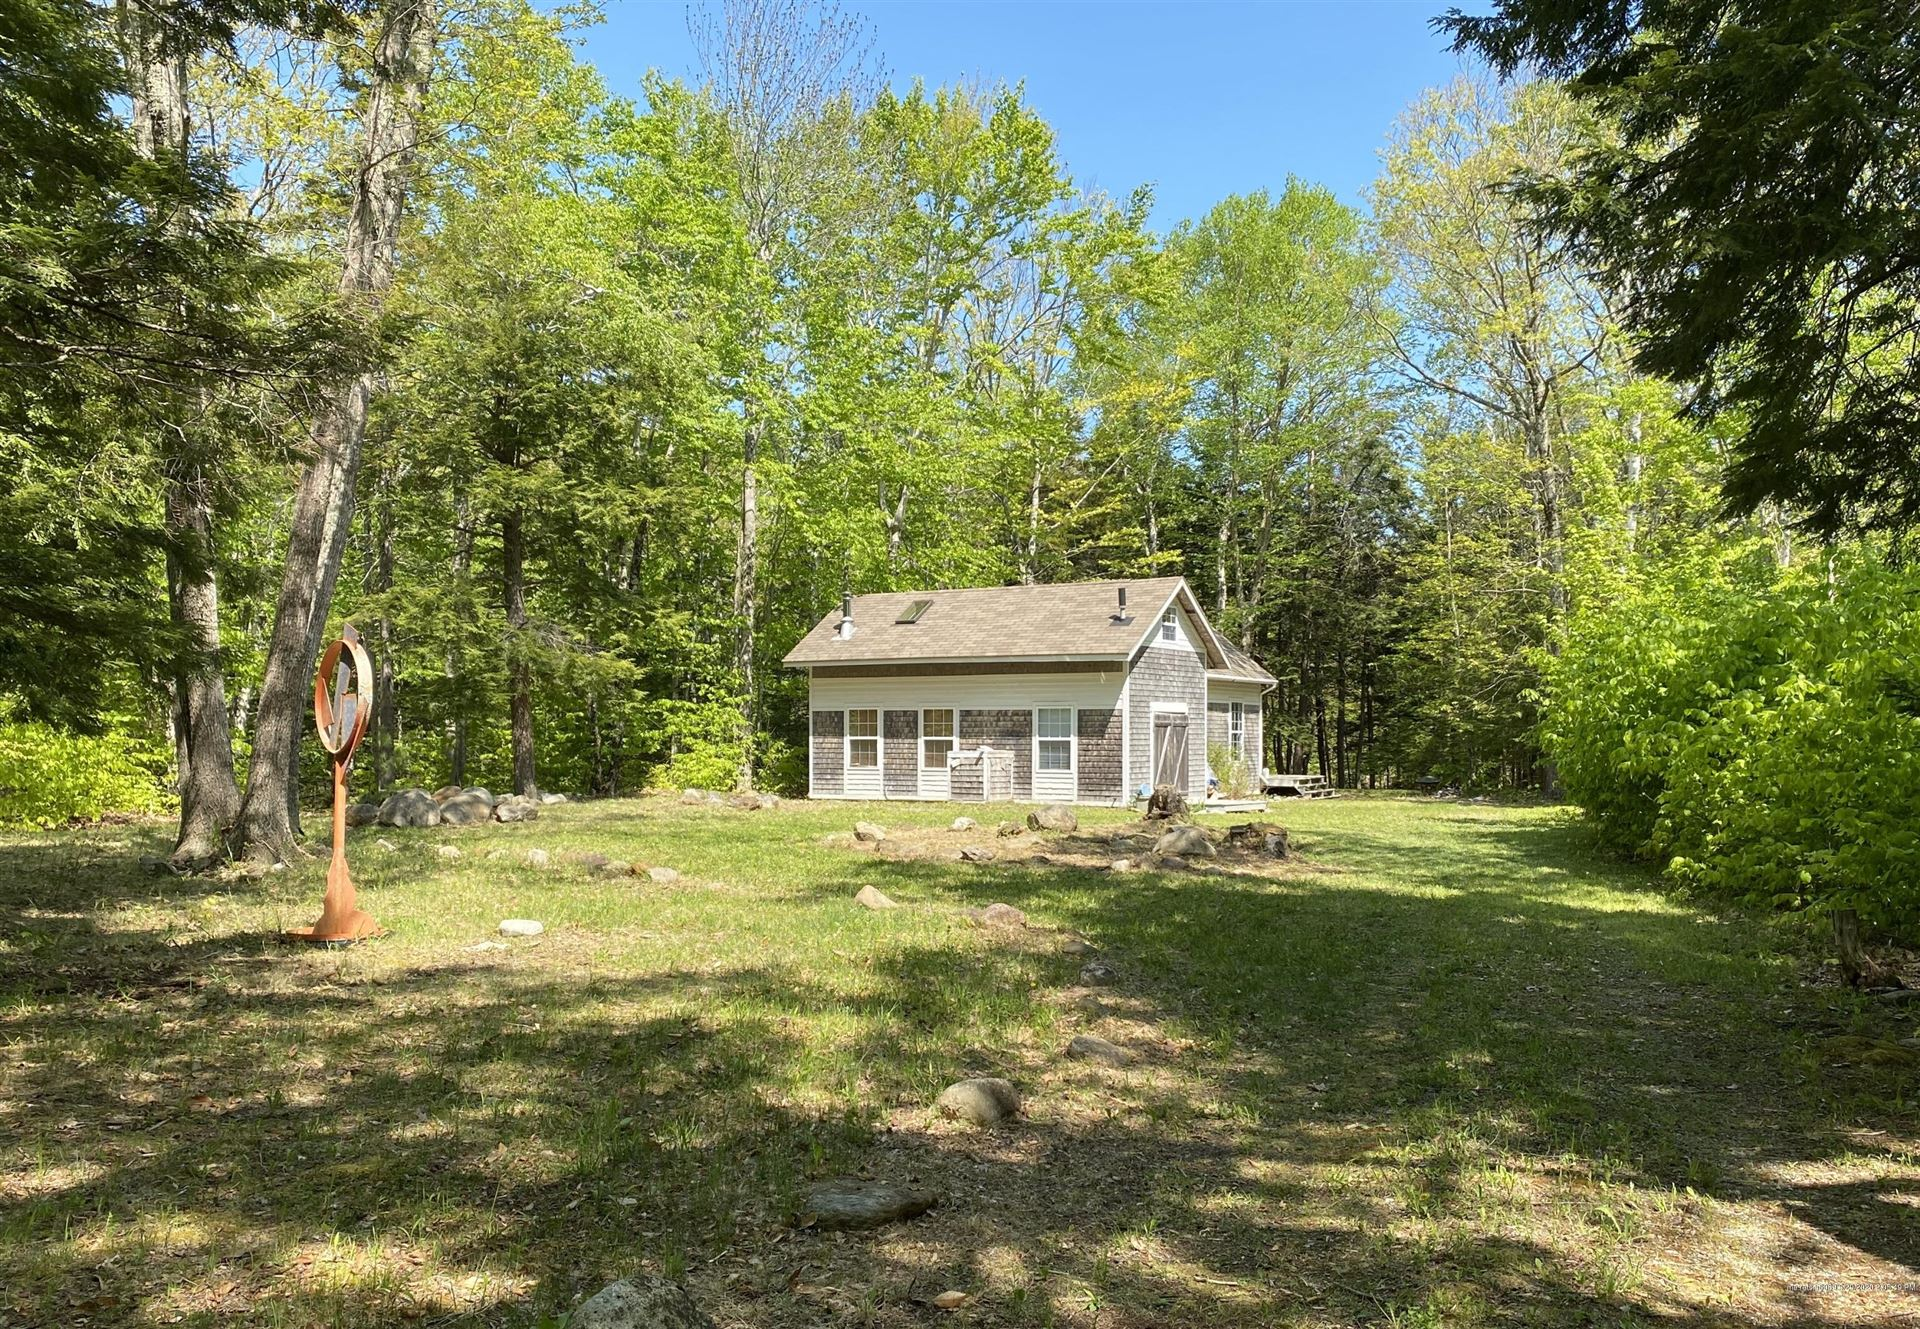 Photo of 50 Rollins Hill Road, Rockport, ME 04856 (MLS # 1453991)